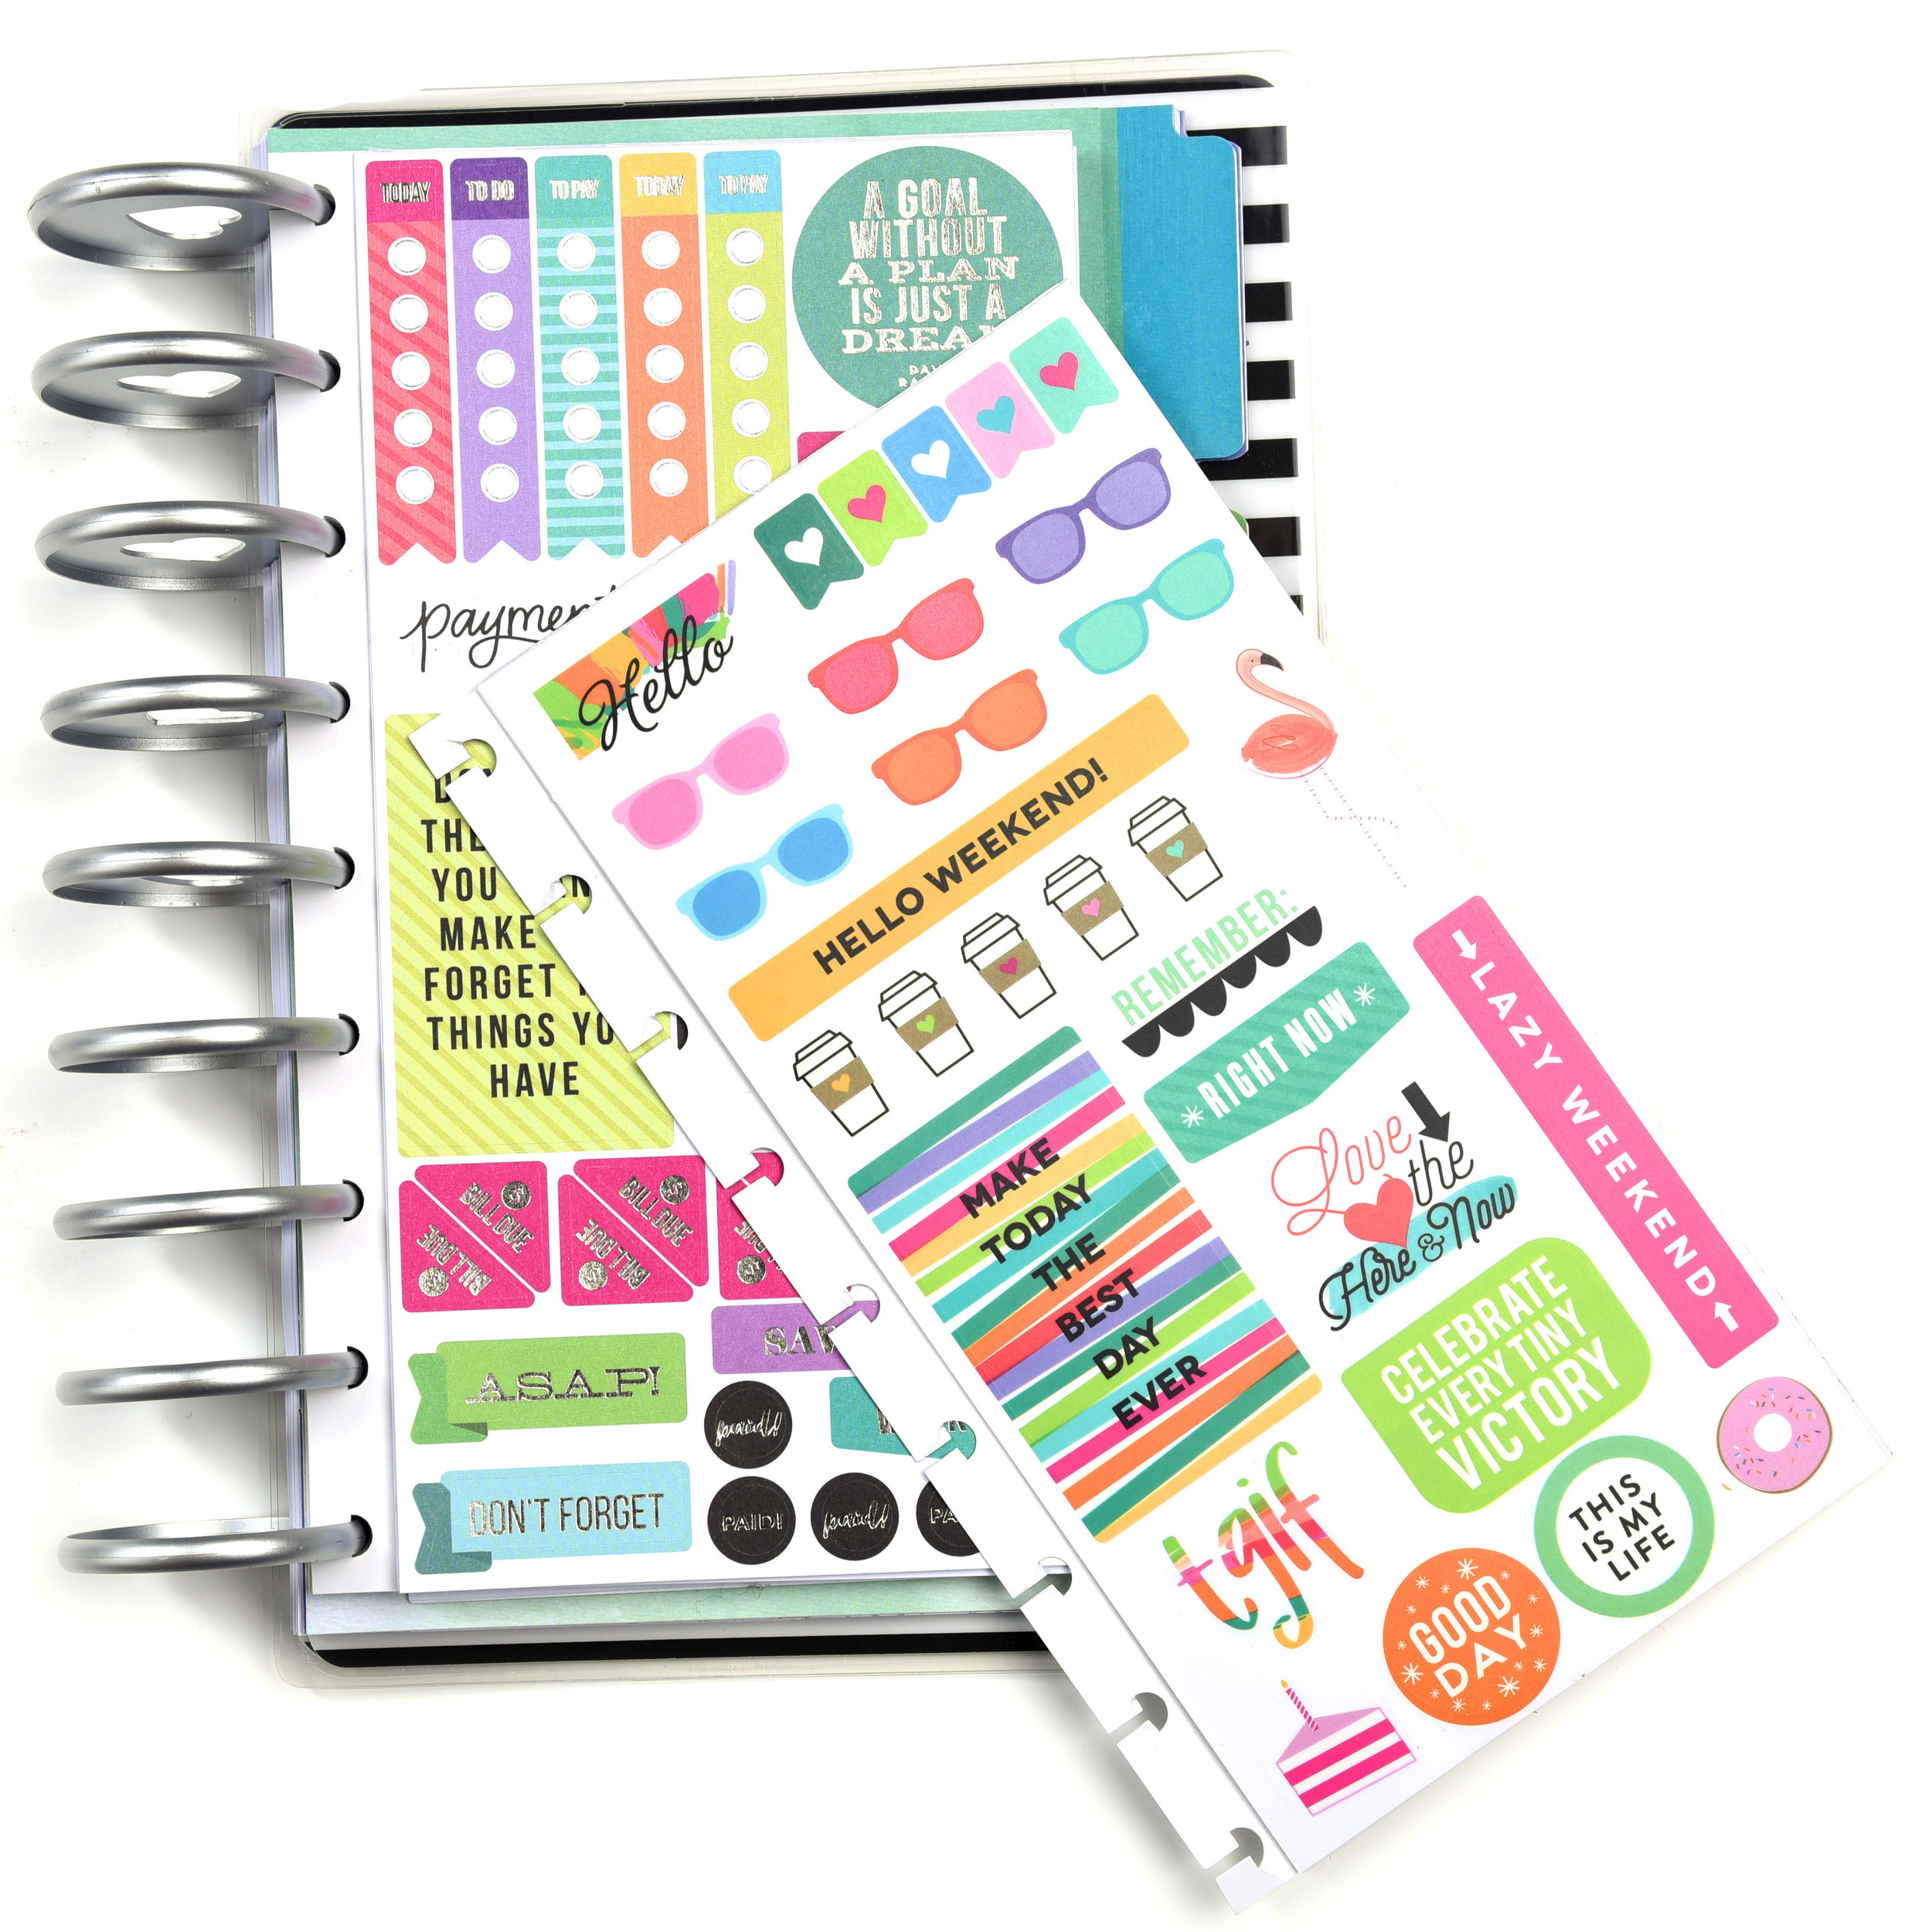 new product highlight of The Happy Planner® Sticker Storage Book b y mambi Design Team member Mariel Reyes | me & my BIG ideas